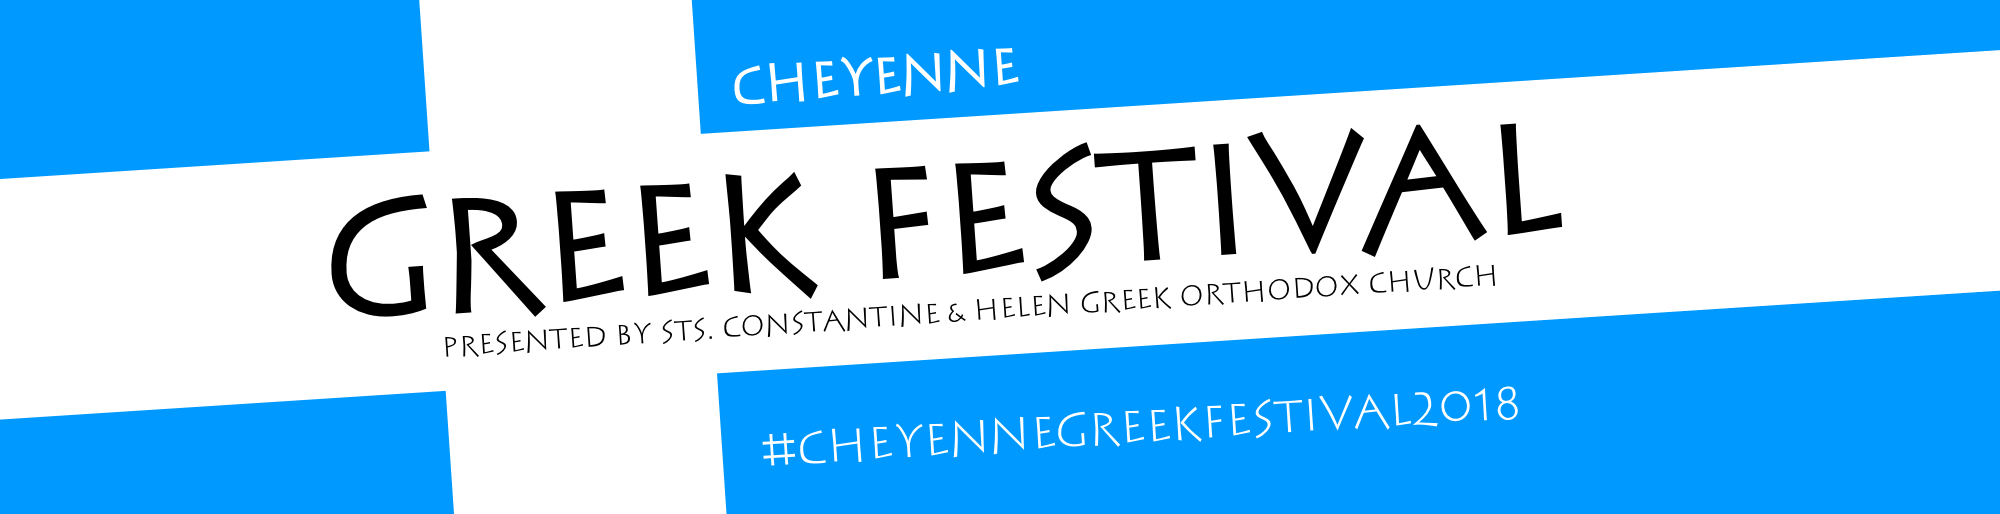 Cheyenne Greek Festival